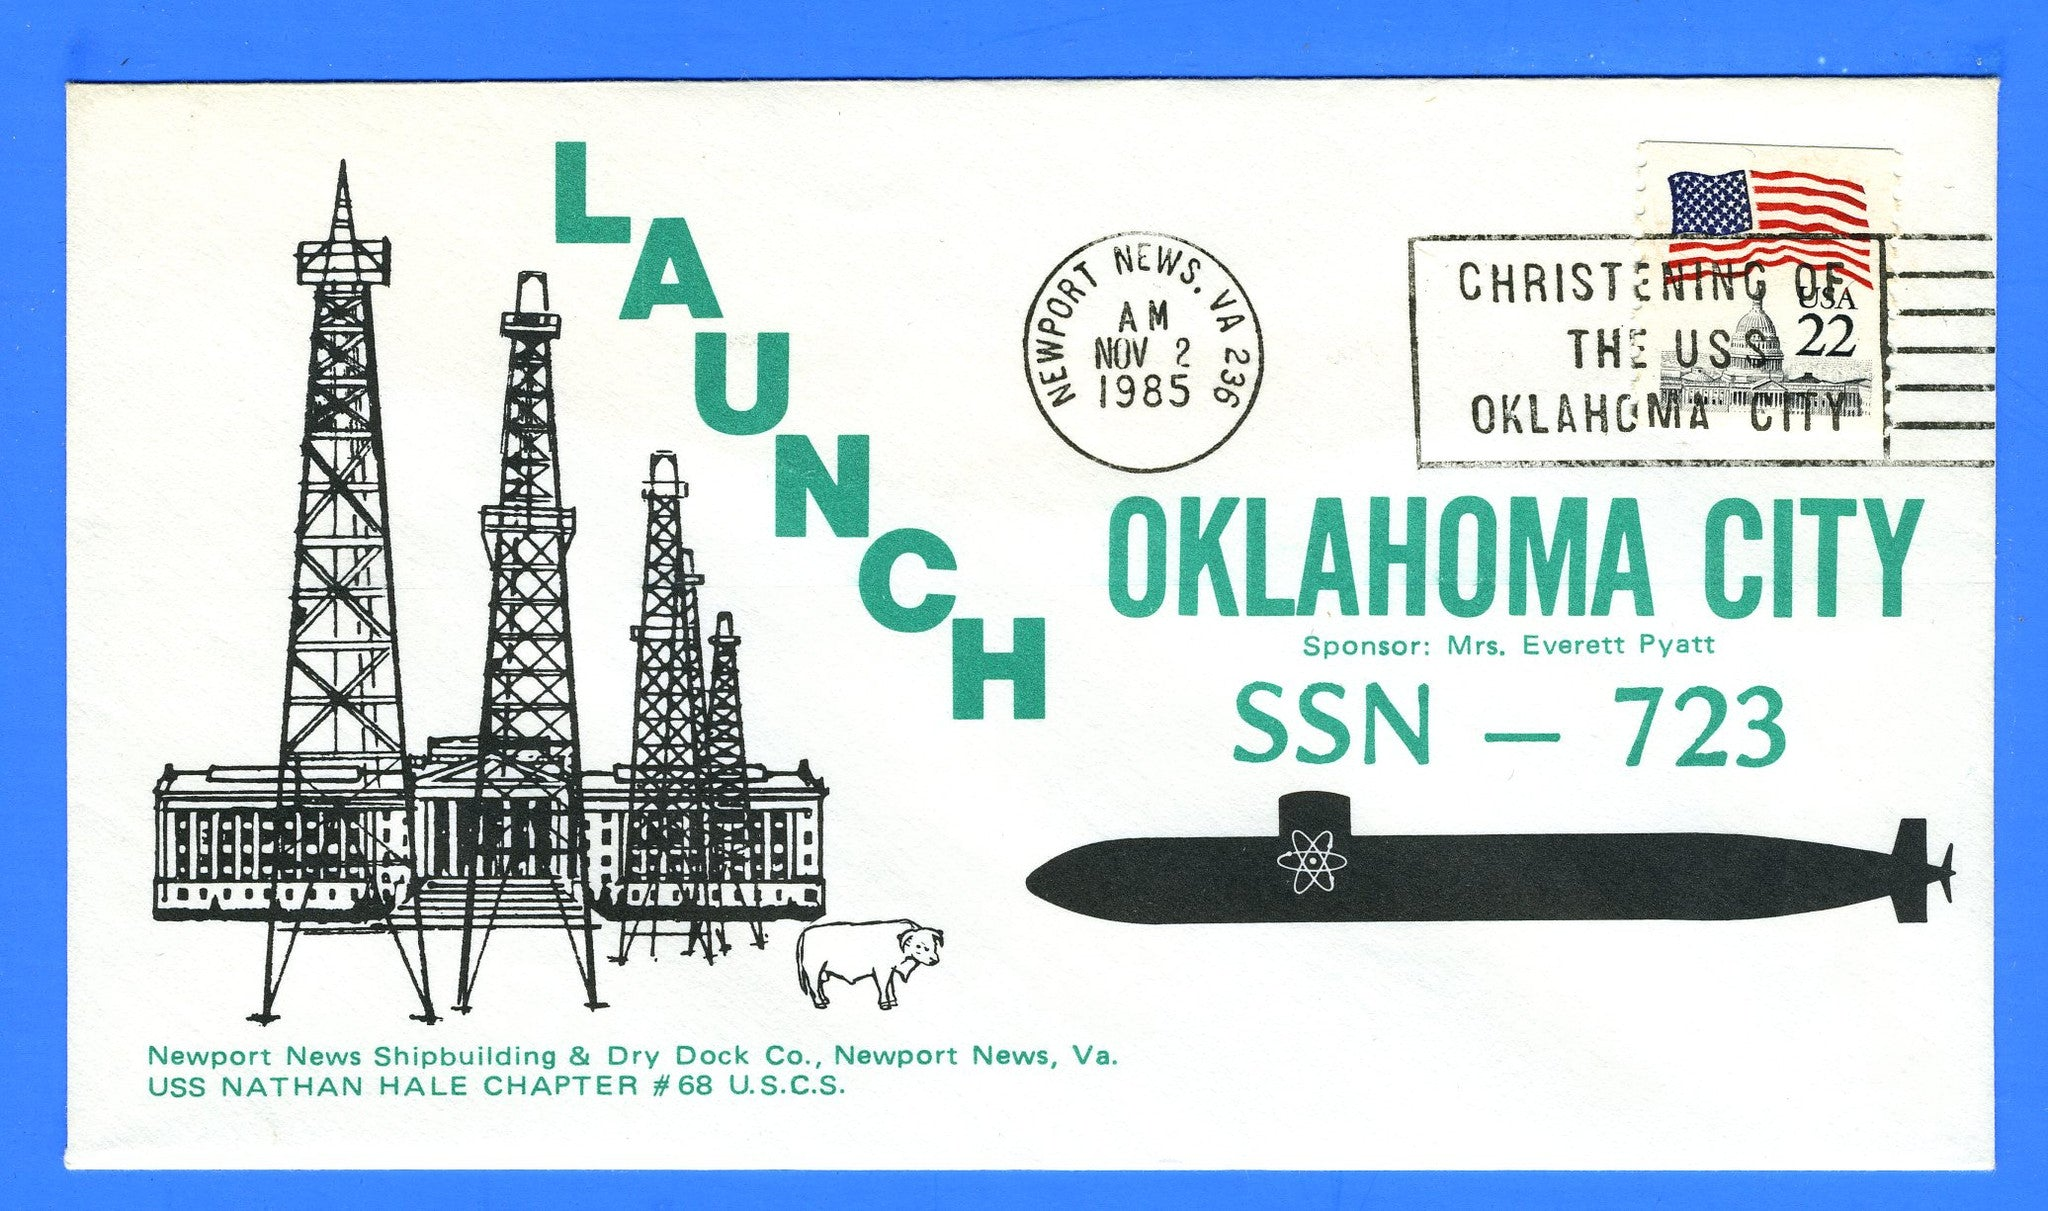 USS Oklahoma City SSN-723 Christened & Launched November 2, 1985 - Cachet by Nathan Hale Chapter No. 68 USCS